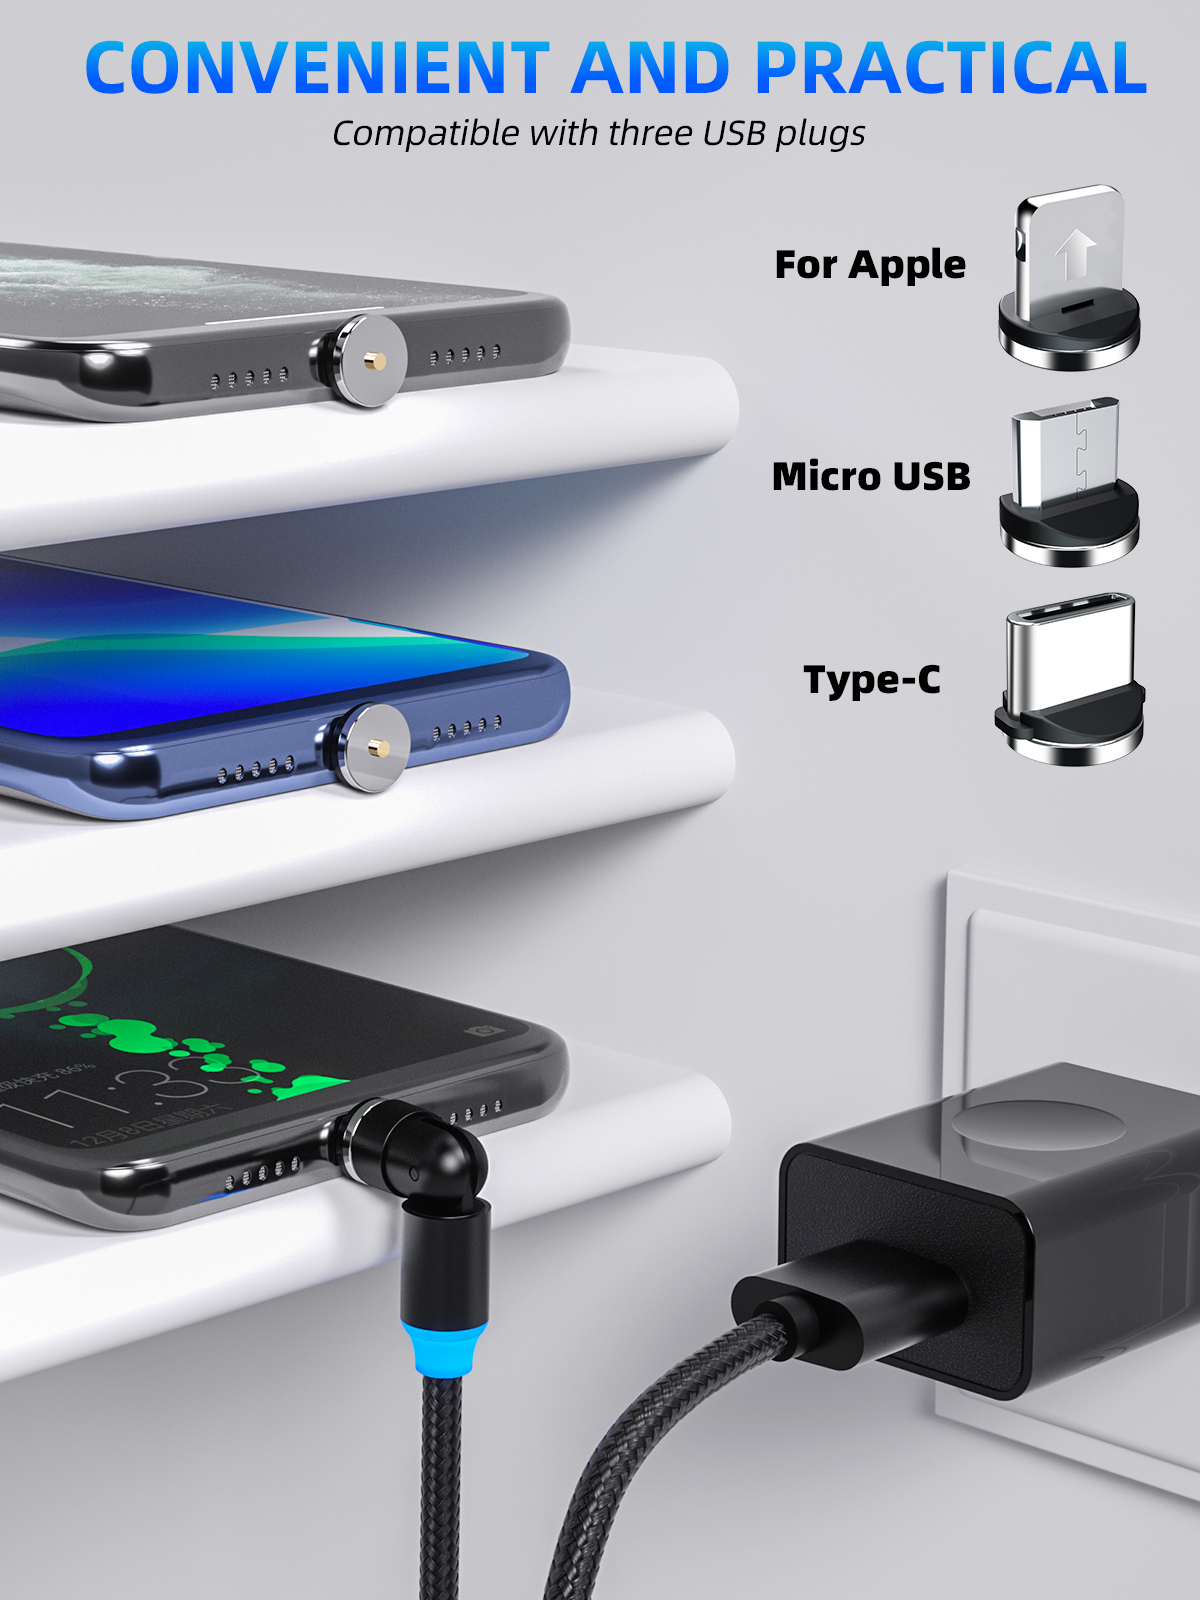 540 Degree Rotate Magnetic Cable